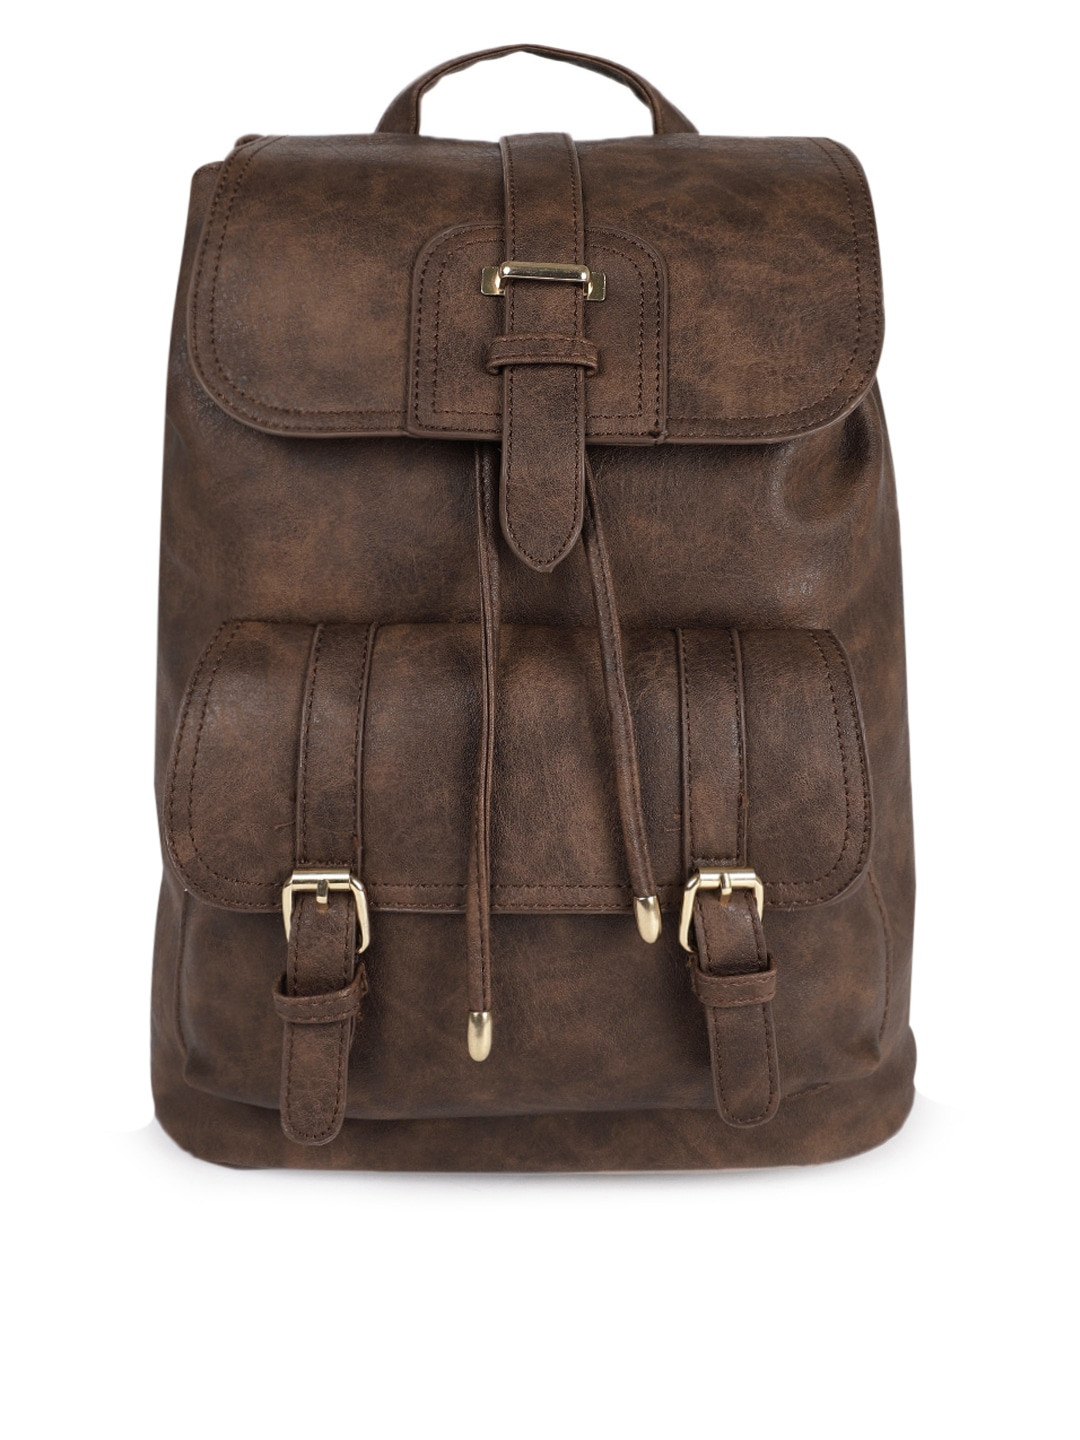 817938ed47d College Bags - Buy College Bags online in India